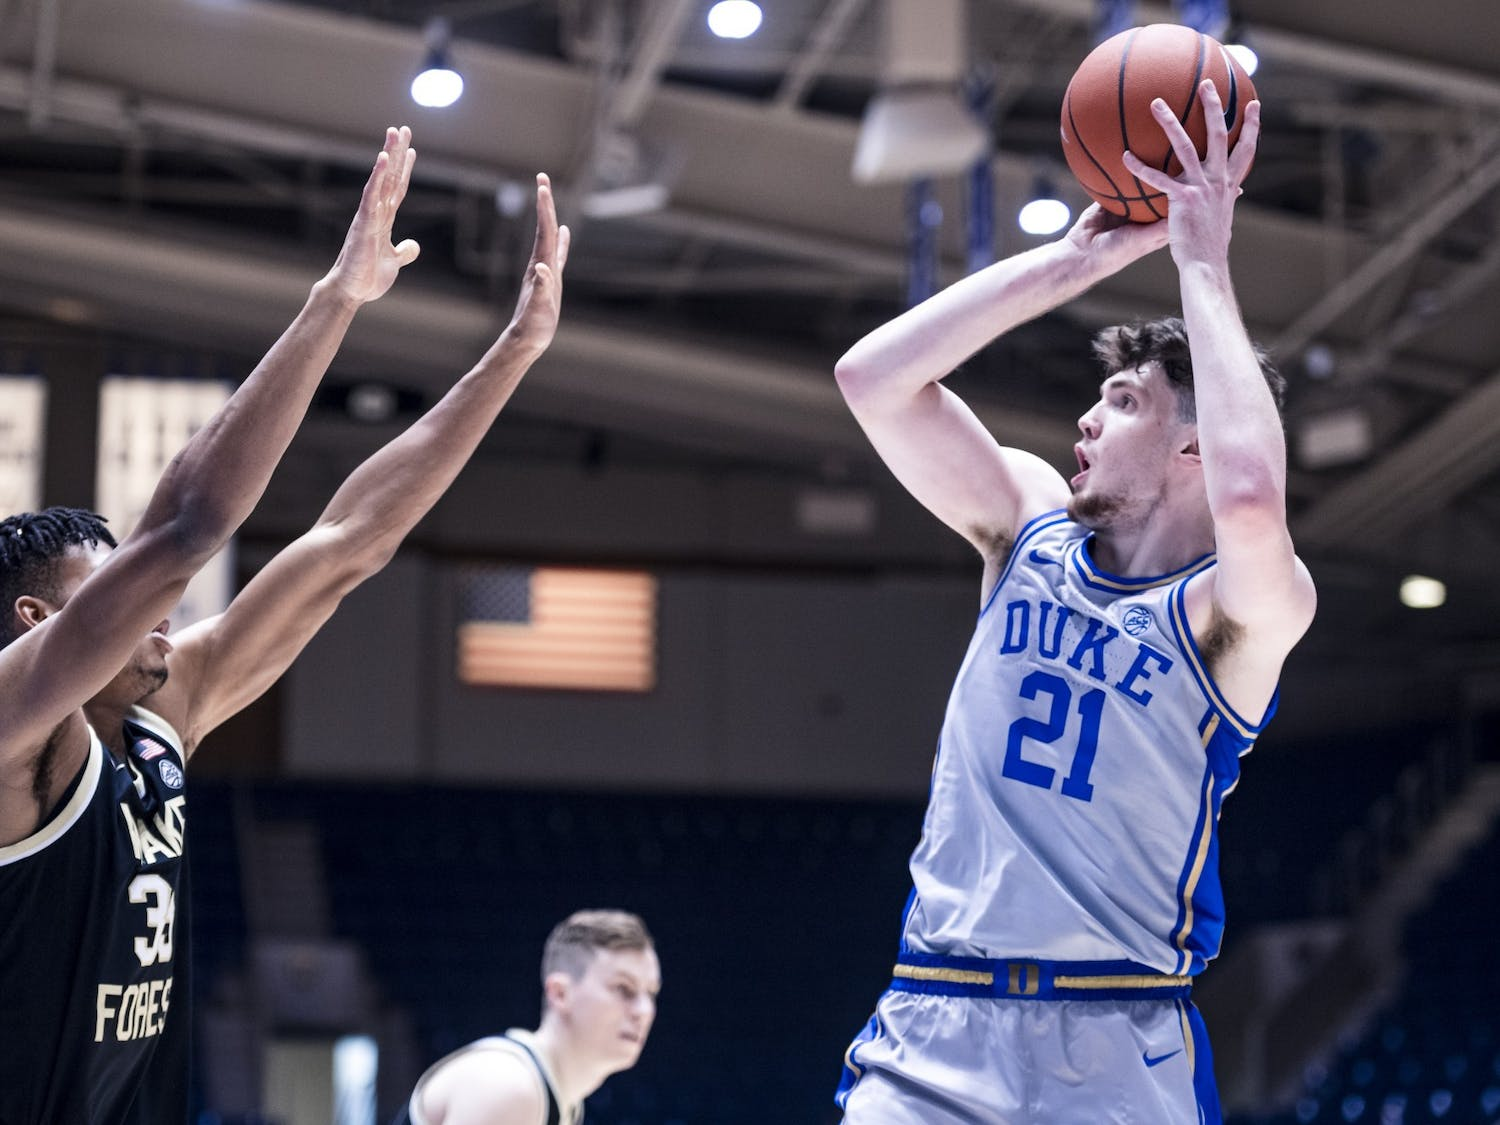 Matthew Hurt and DJ Steward were the two bright spots for their shining efforts in this past game.